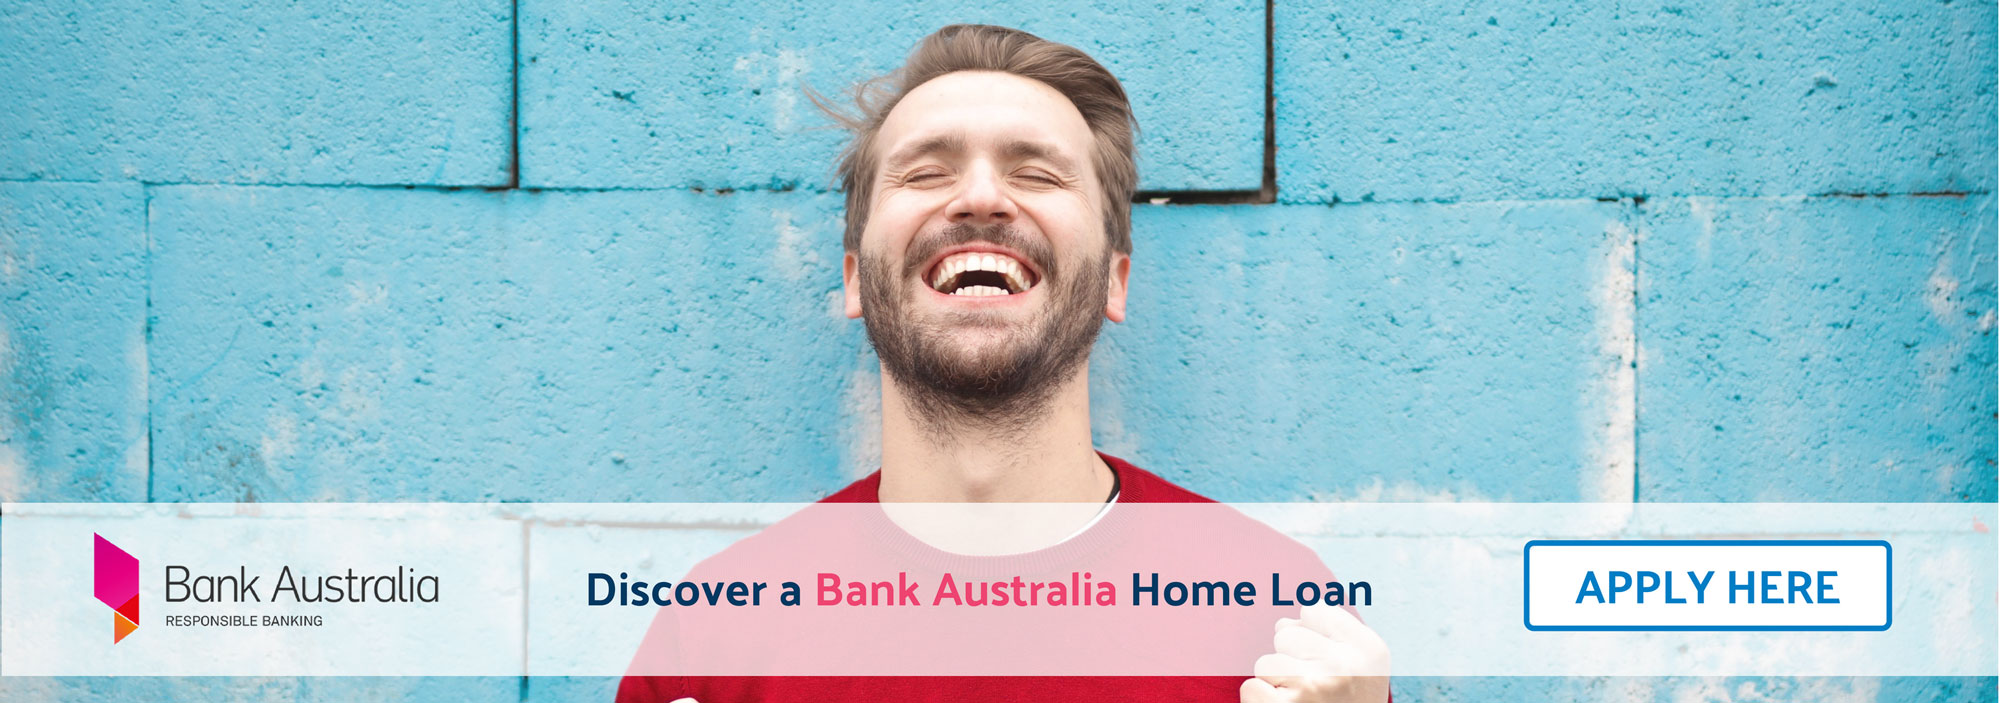 bank australia home loan construciton loan mortgage lenders insurance building loan finance